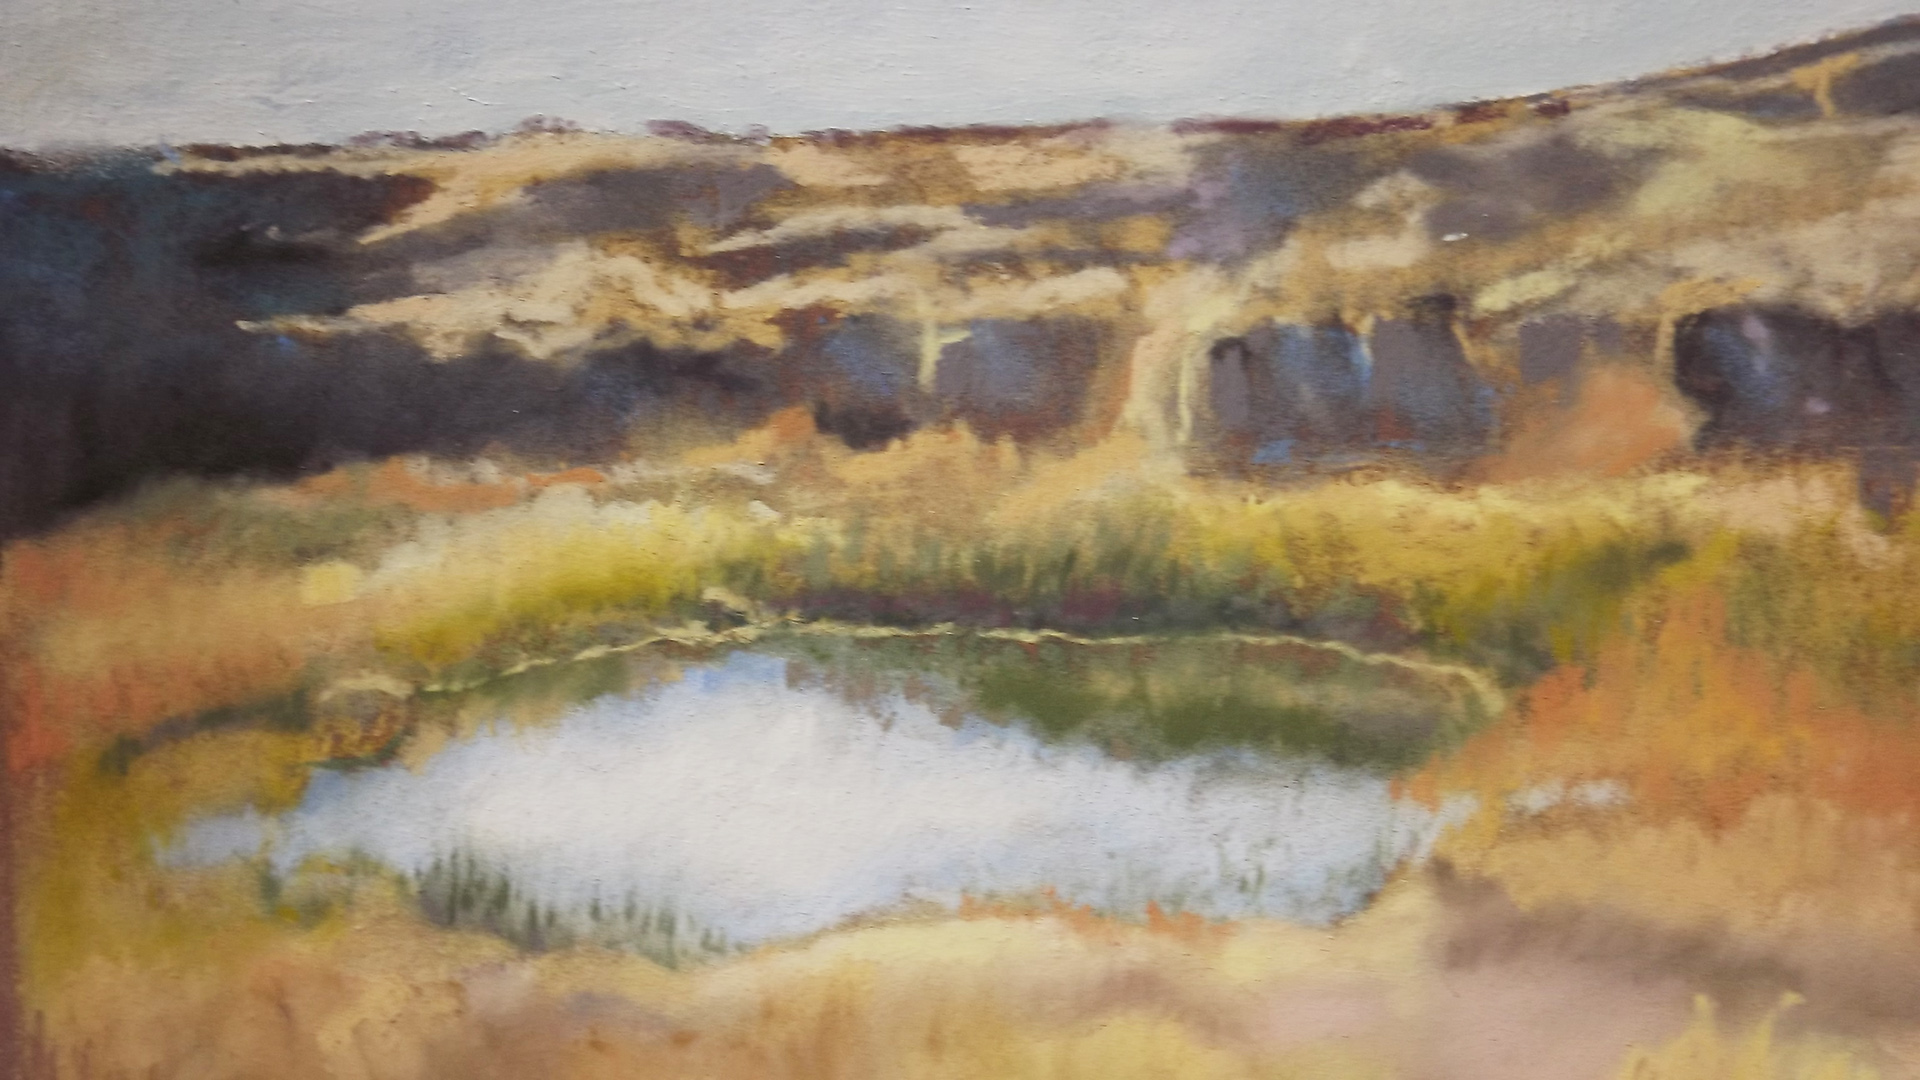 Kathy Murray, Inviting Pothole, soft pastel